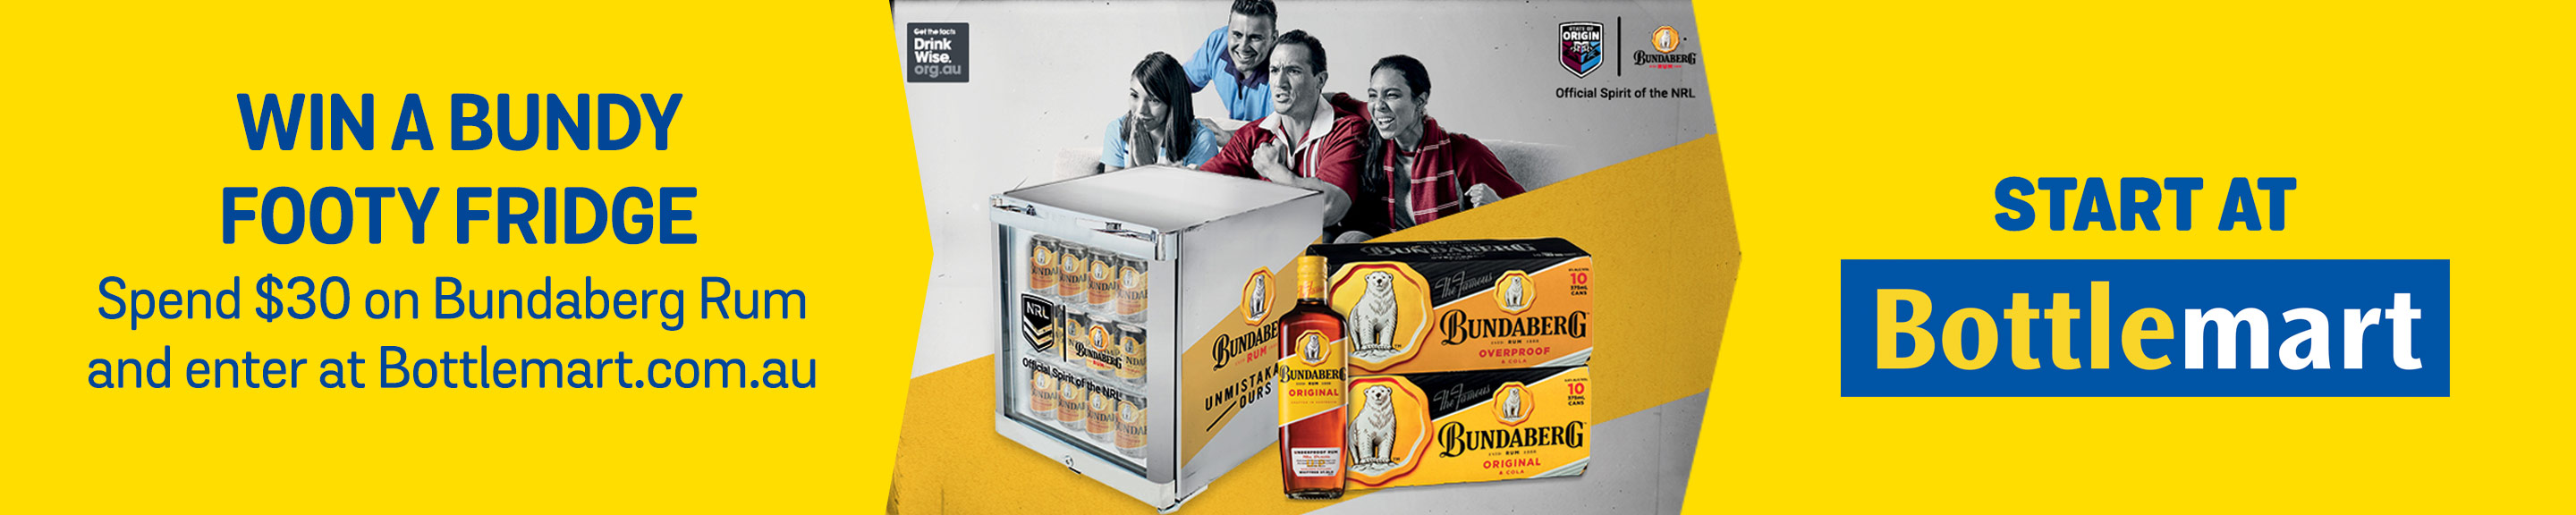 Win a Bundy Footy Fridge